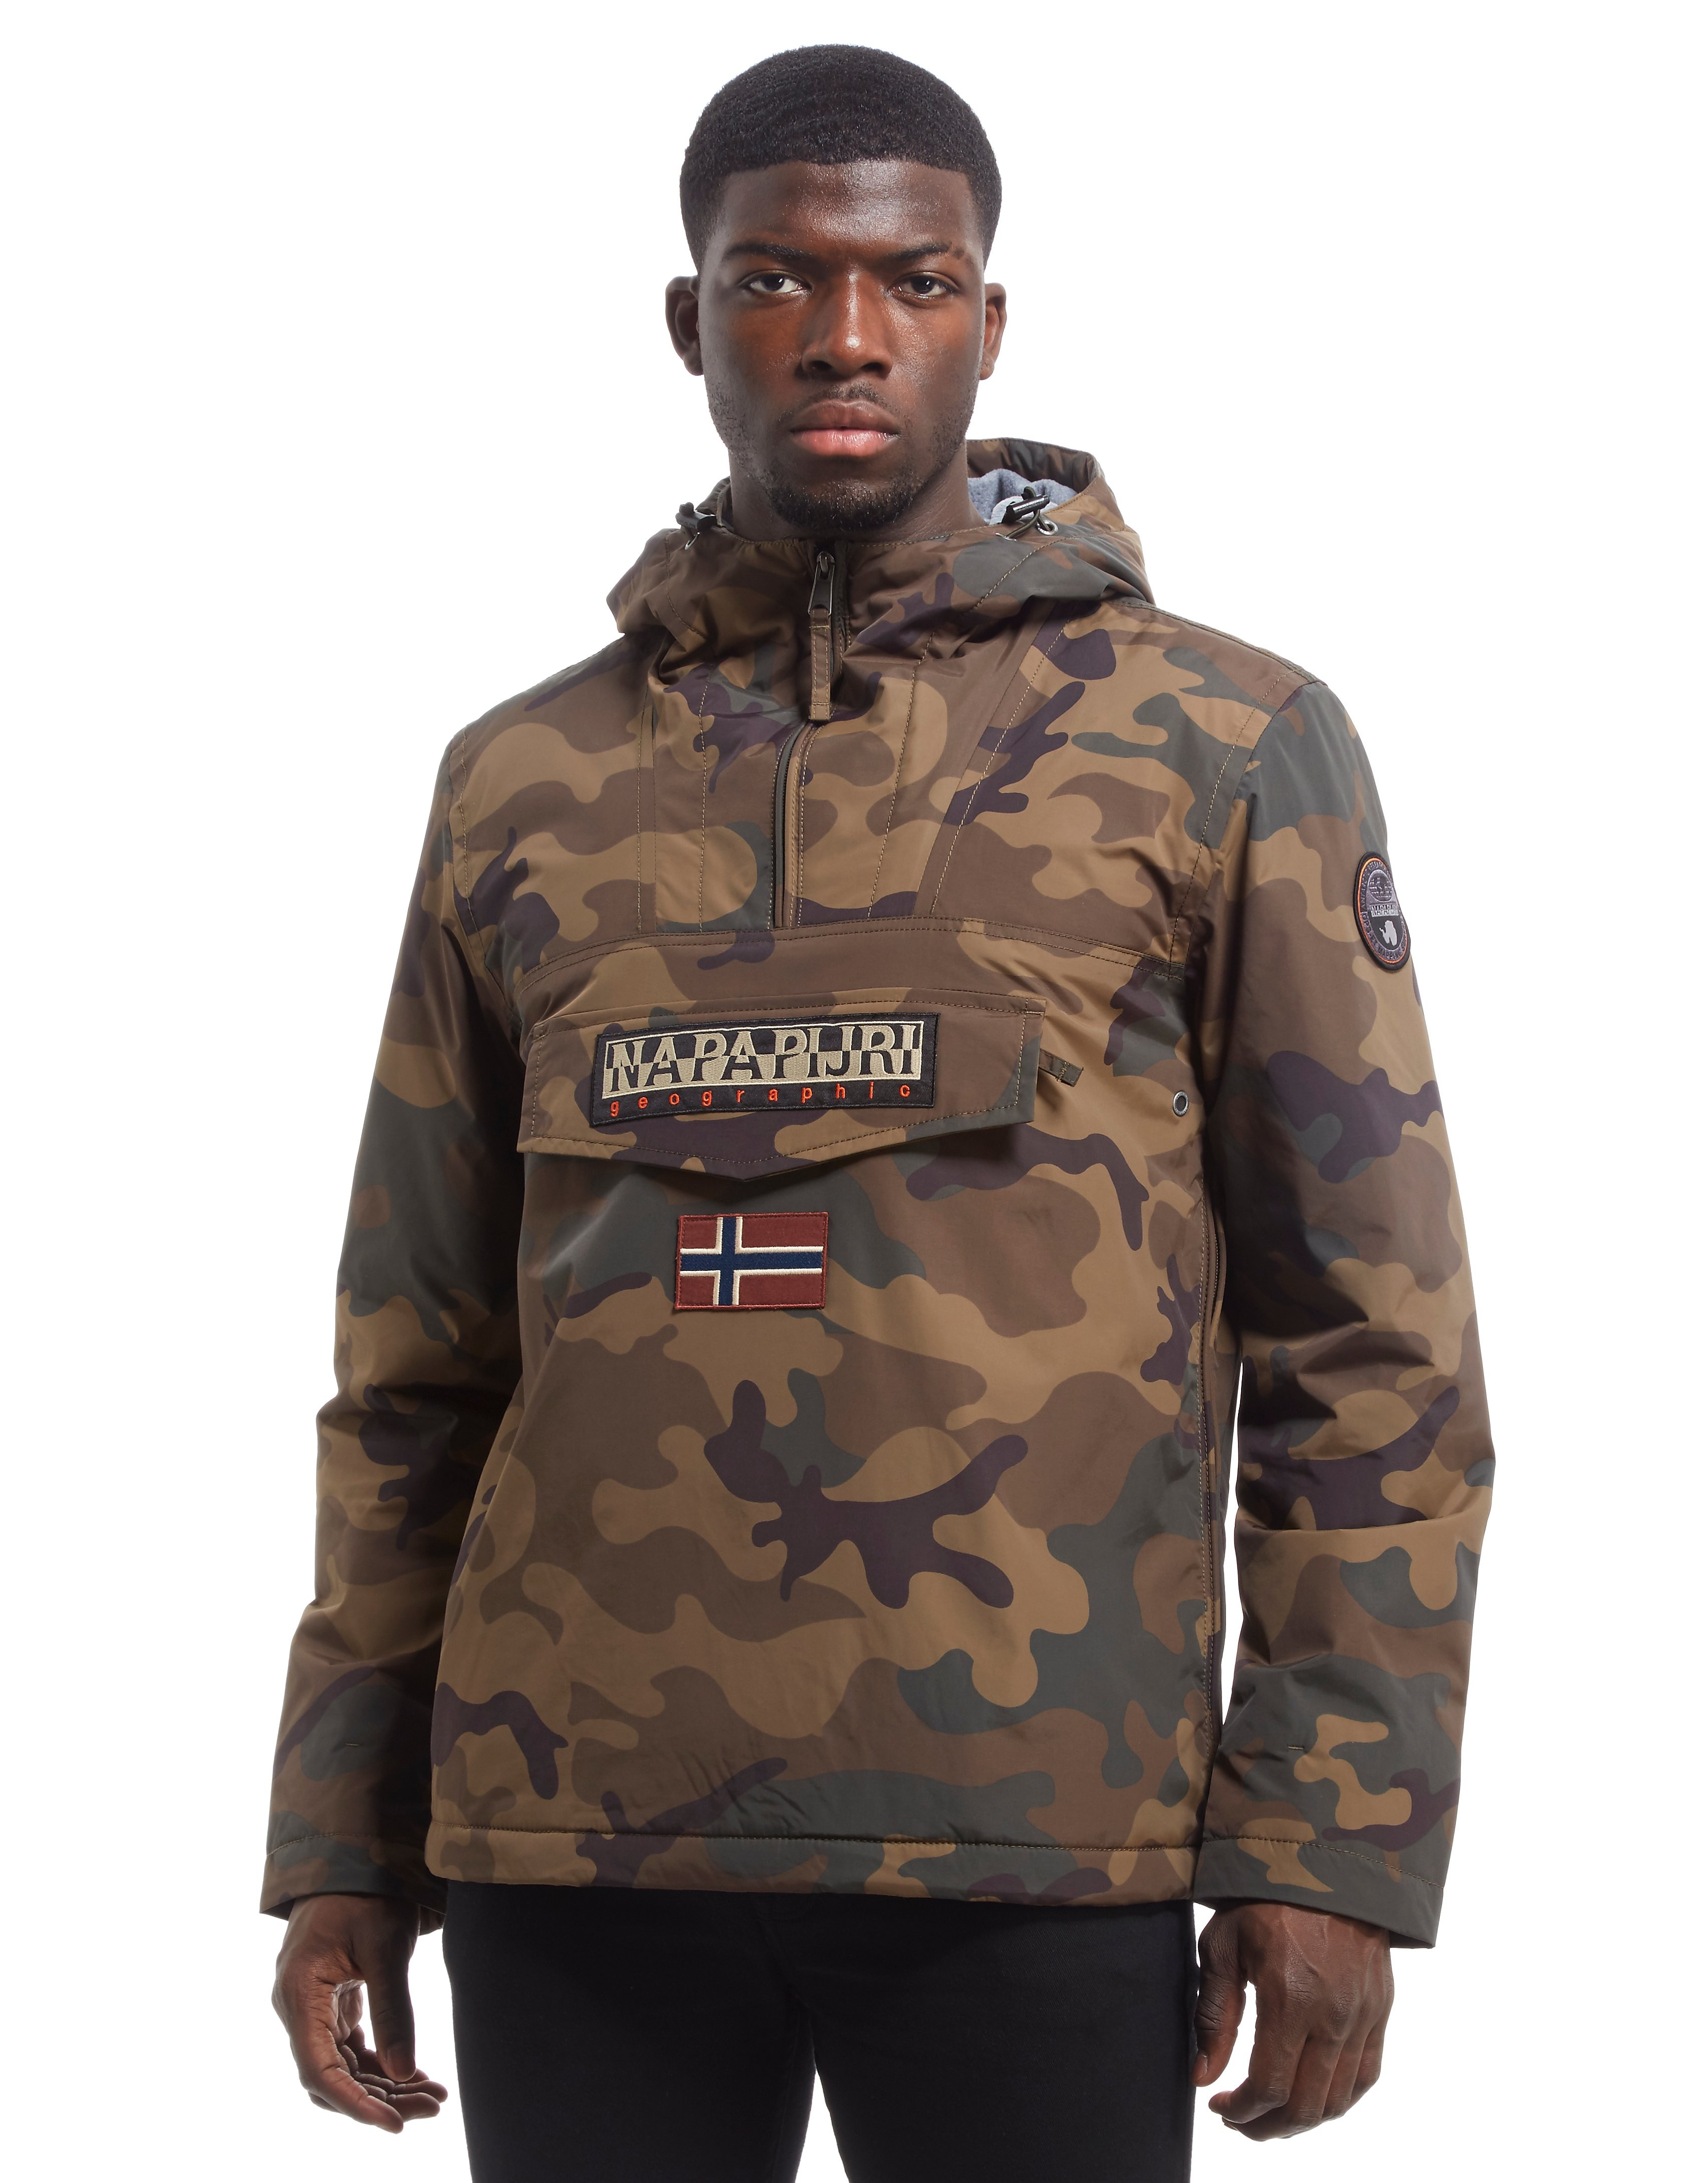 Napapijri Rainforest Camo Overhead 1/4 Zip Jacket